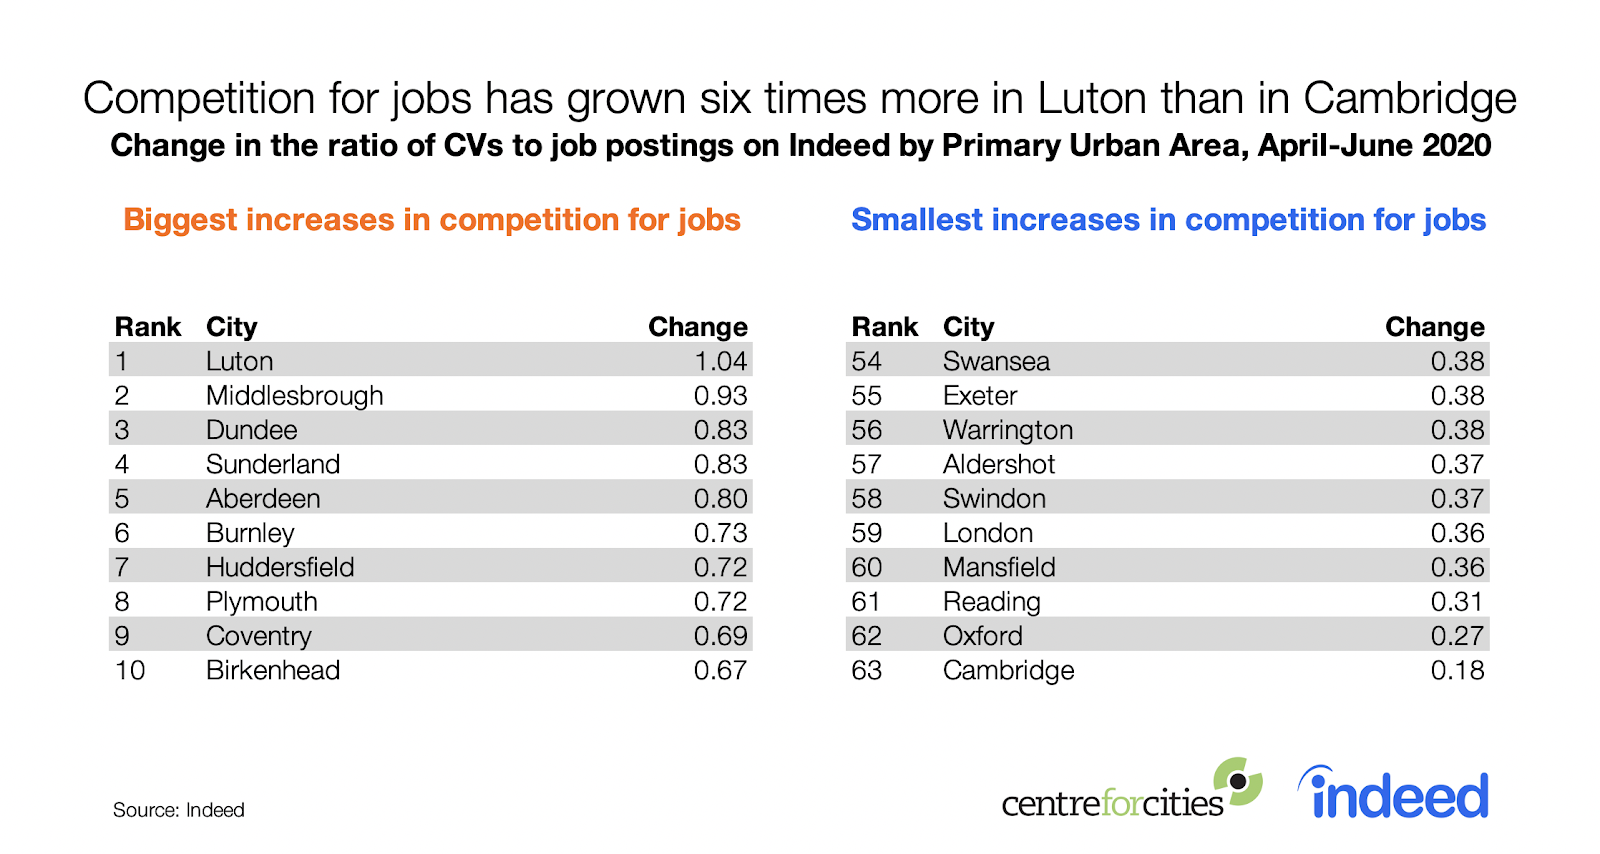 Competition for jobs has grown six times more in Luton than in Cambridge